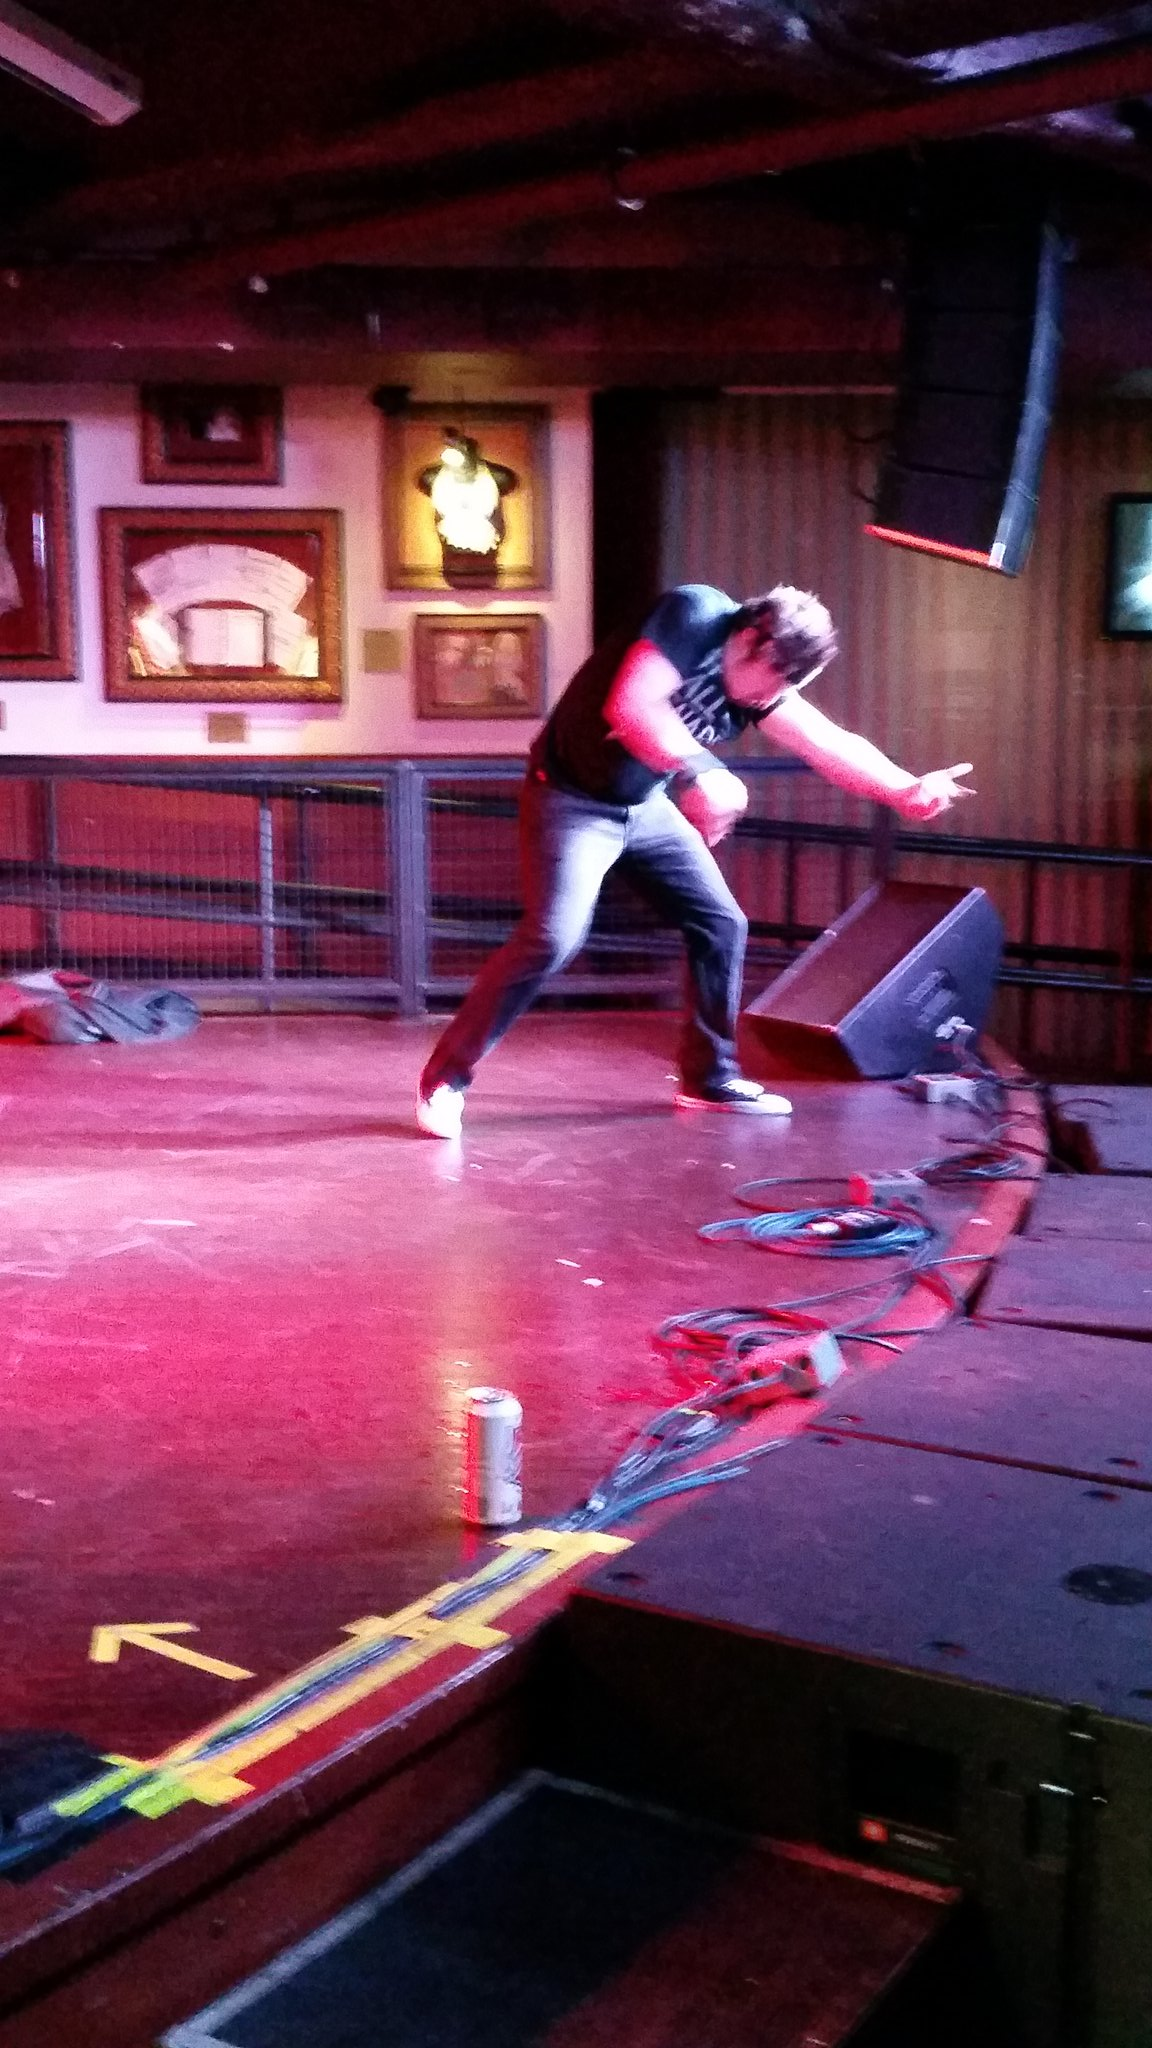 Filthy Fingers did GREAT and got the first 6.0 of the night!!! A huge jump from previous scores which haven't passed 5.5 #usairguitar https://t.co/mfMP0Eq2ww